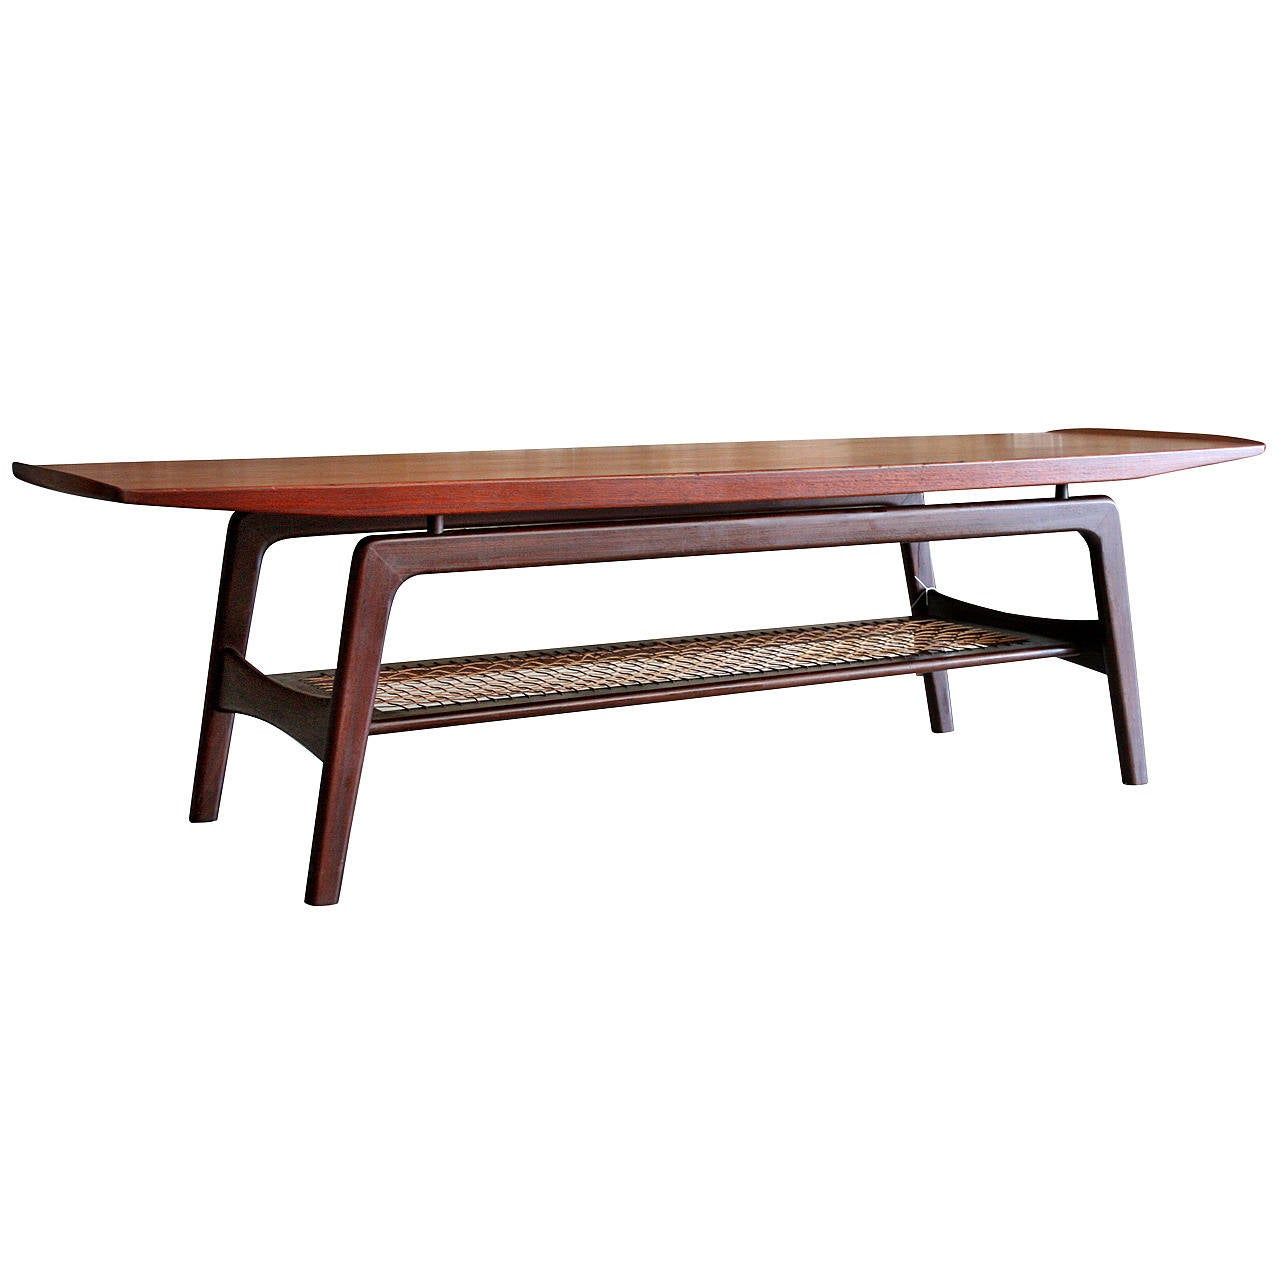 Teak Danish Coffee Table By Arne Hovmand Olsen At 1stdibs